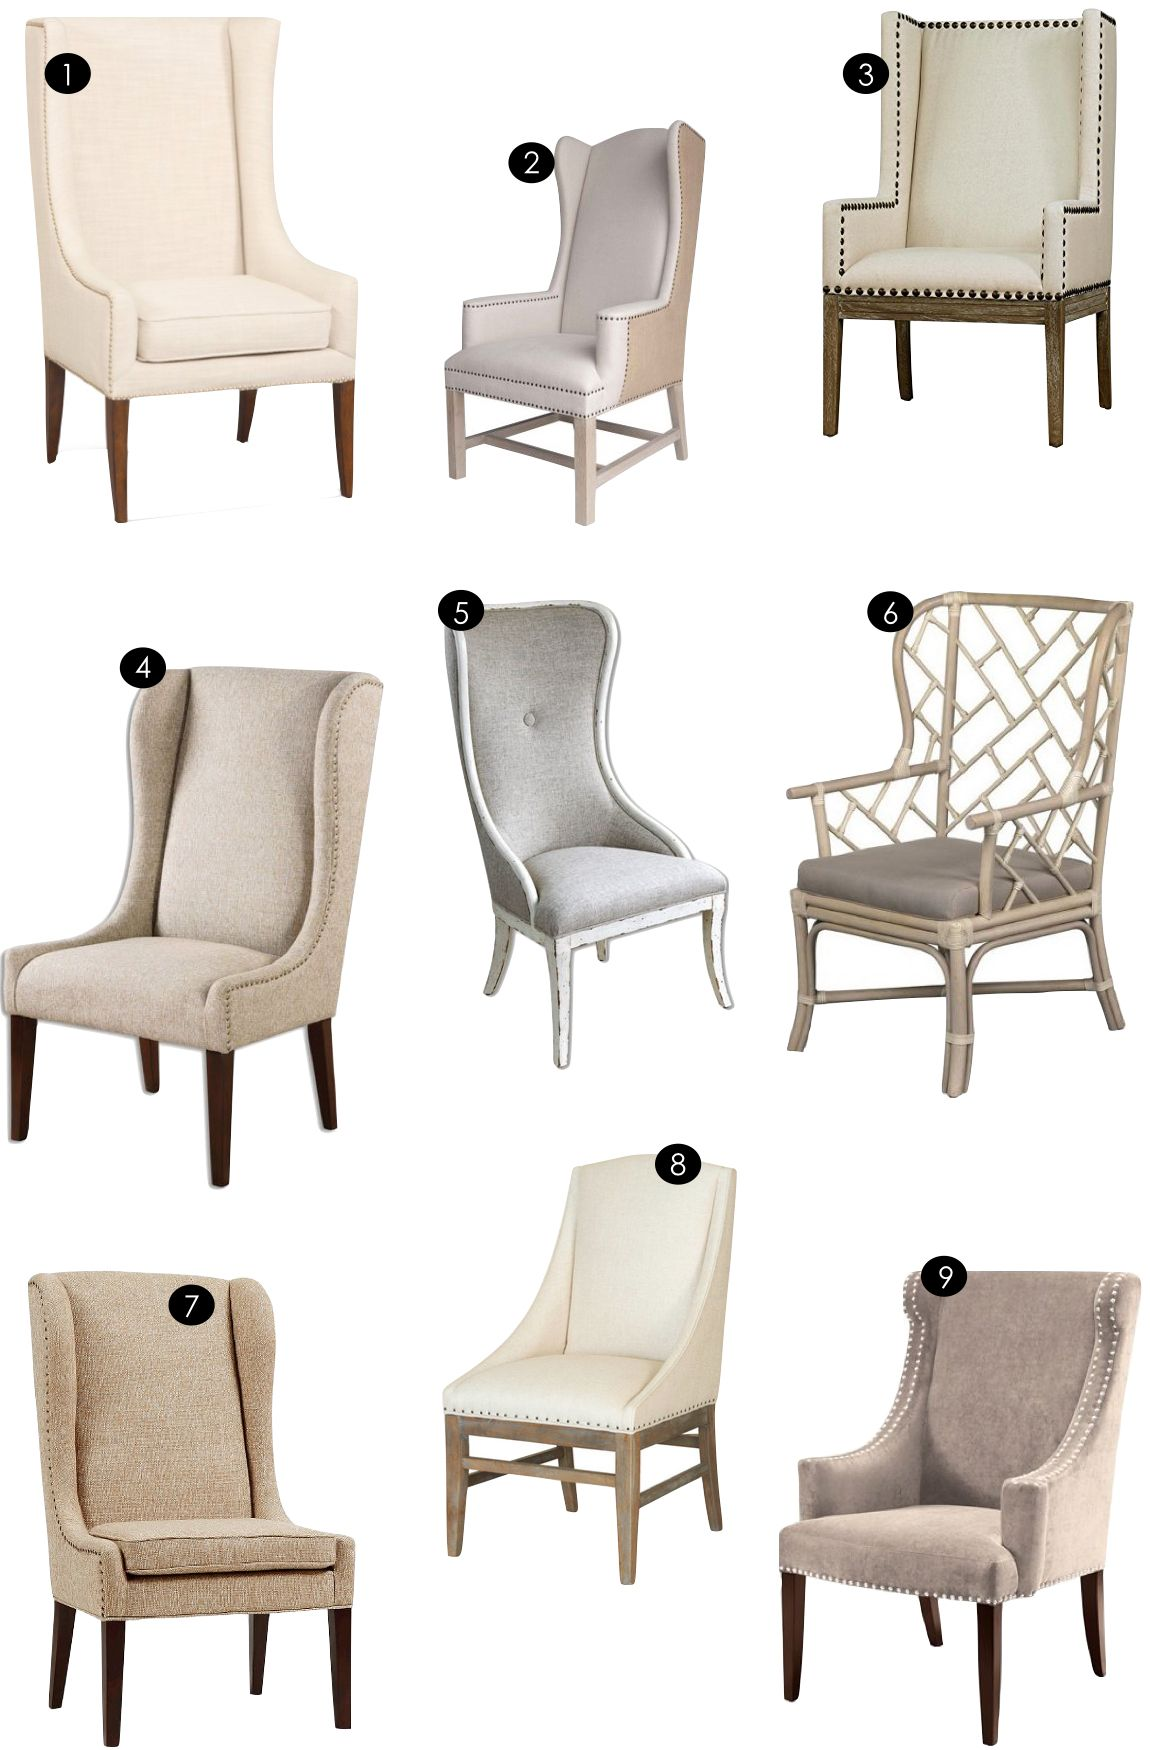 Bon Host + Hostess Chairs | Kikiu0027s List. Are Any Available Without The Nailhead  Trim?